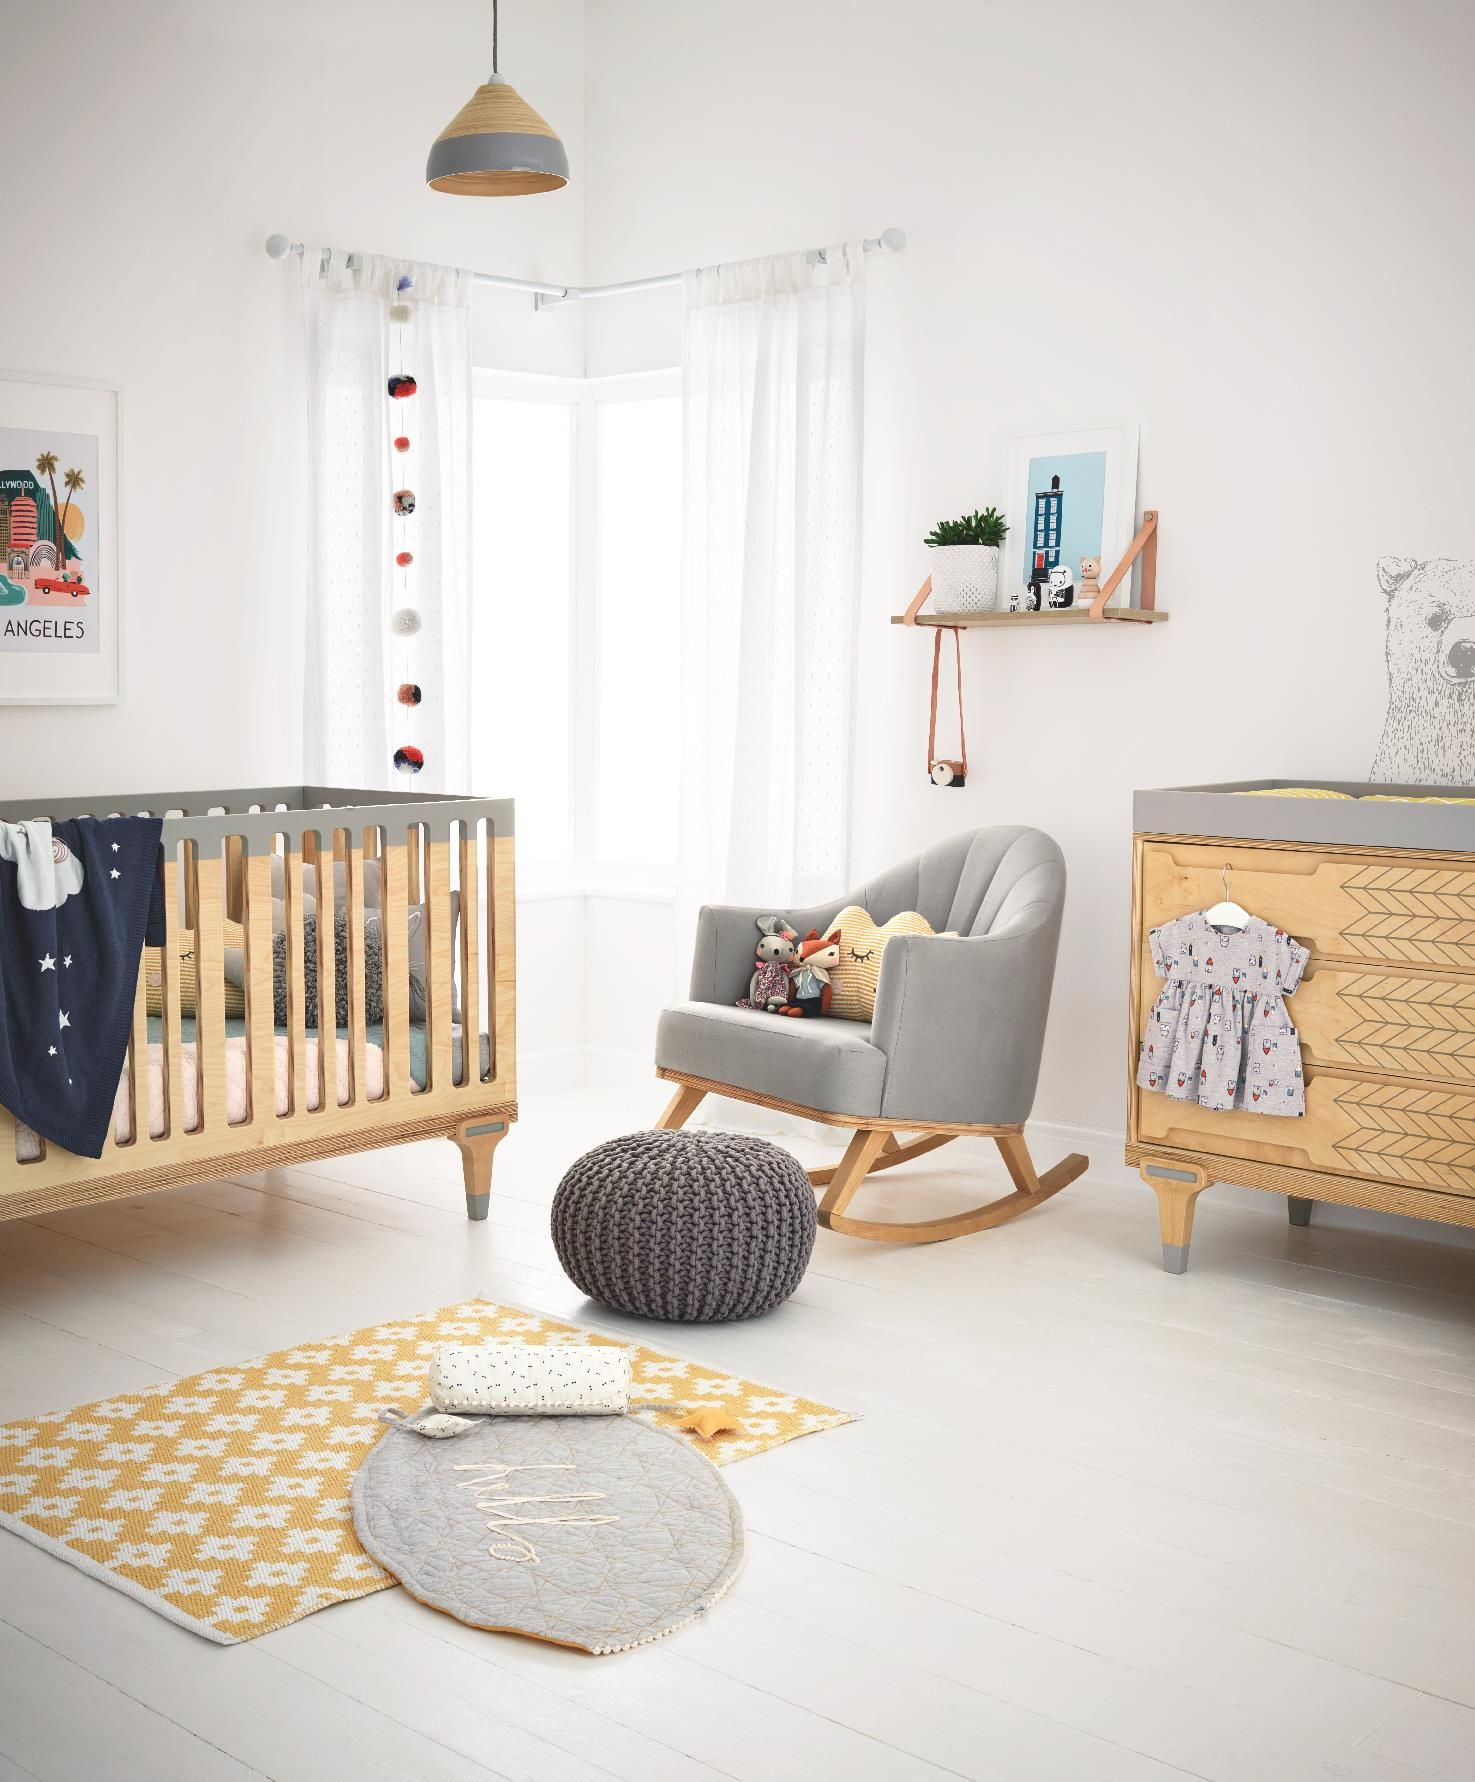 Bunny Clyde Is A Irish South African Nursery Brand That Create Timeless Design Led Furniture For Children The Range Of Heirloom Quality And